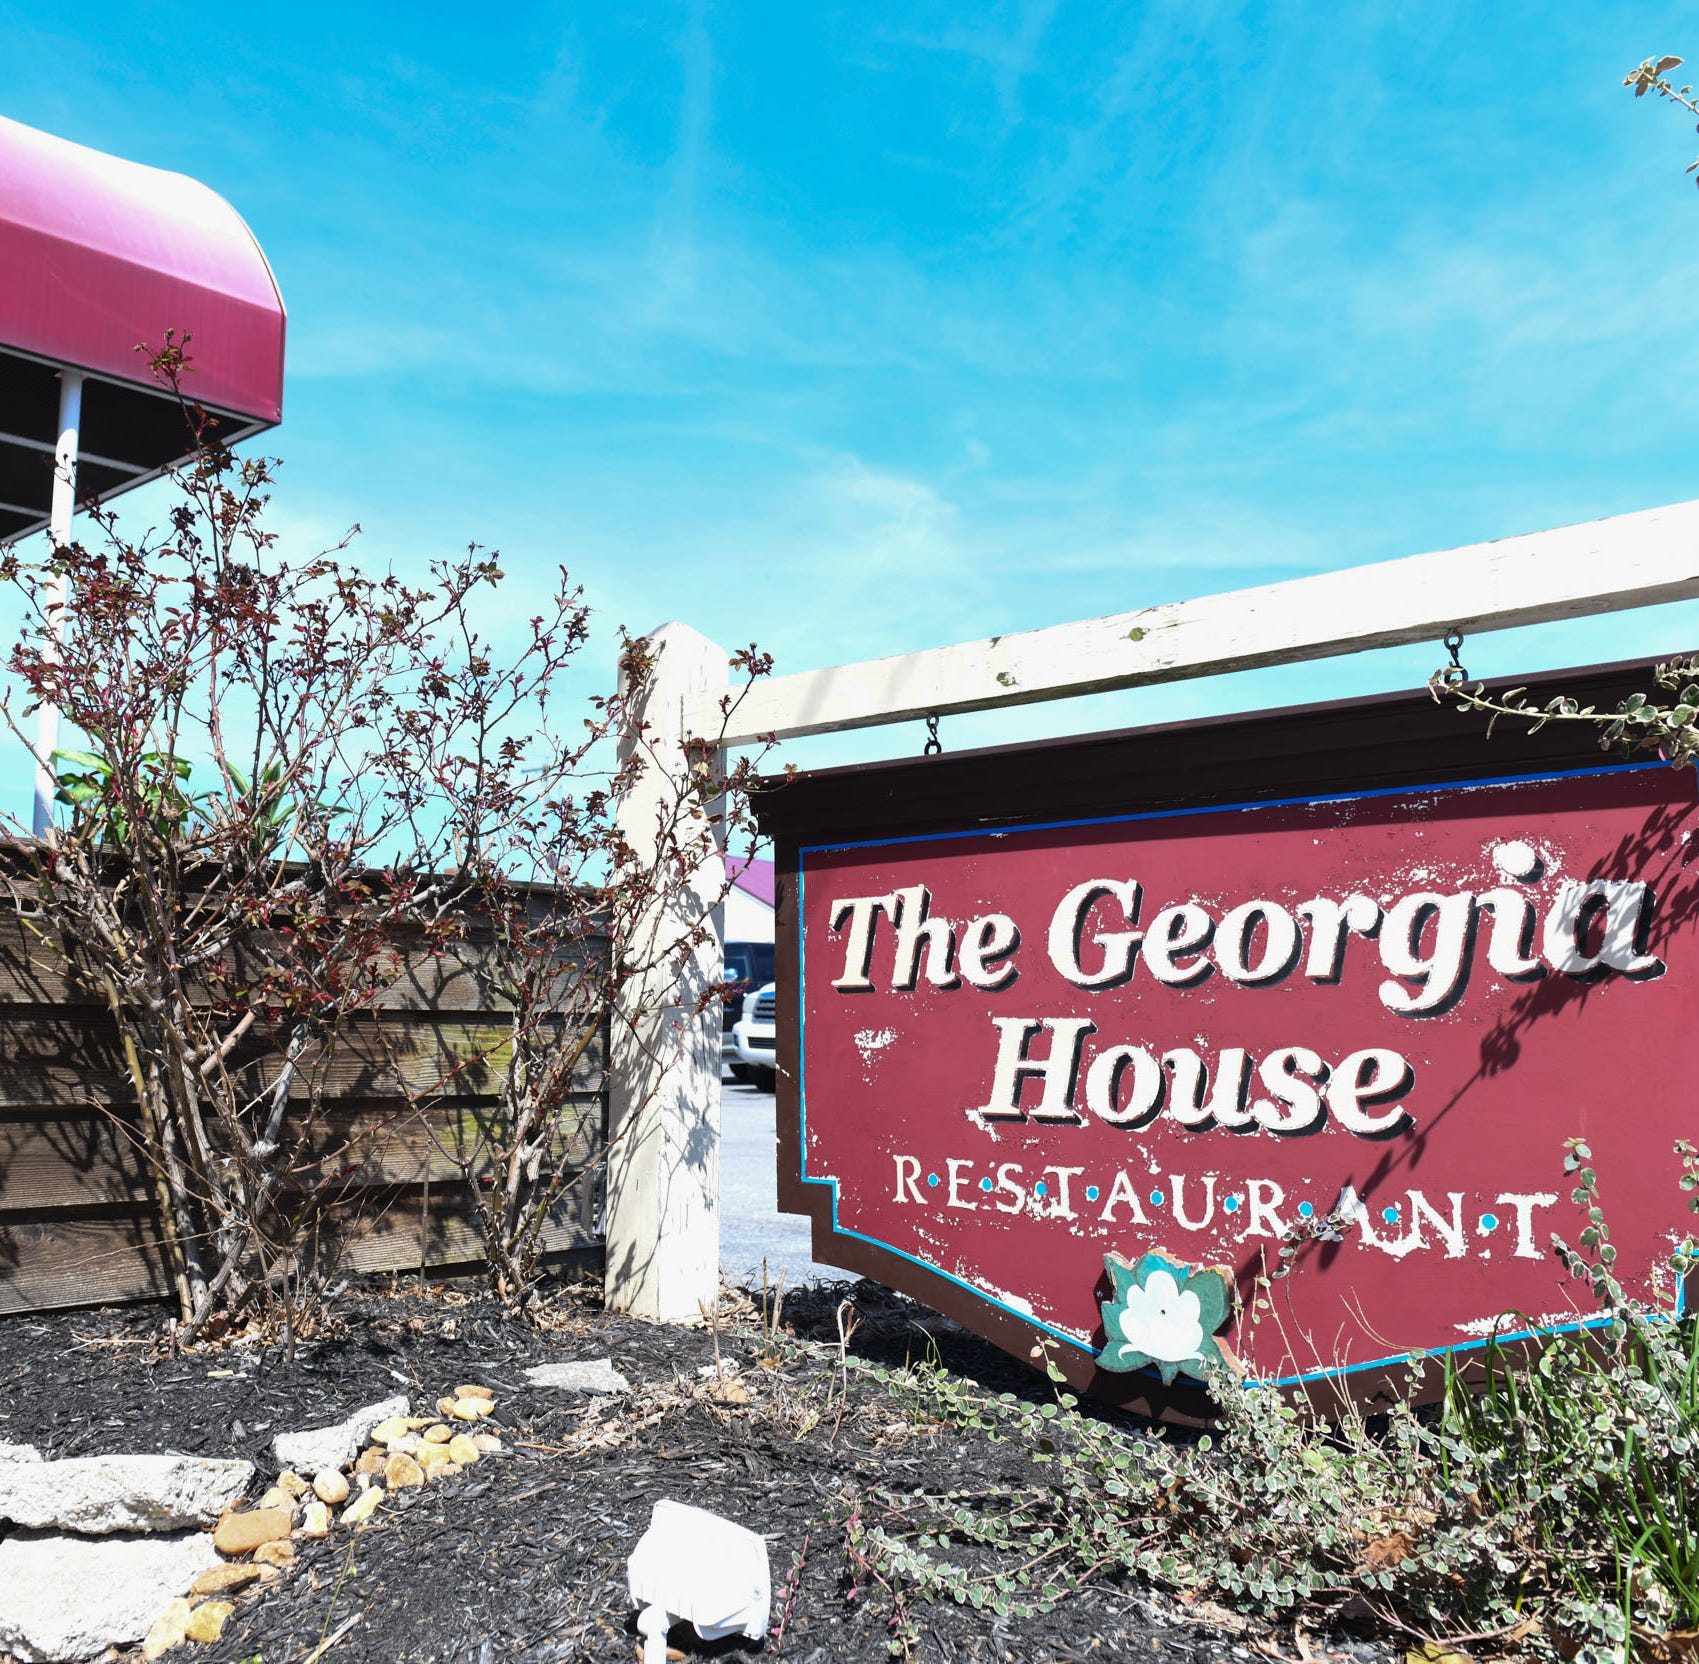 Georgia House Restaurant in Millsboro closes suddenly